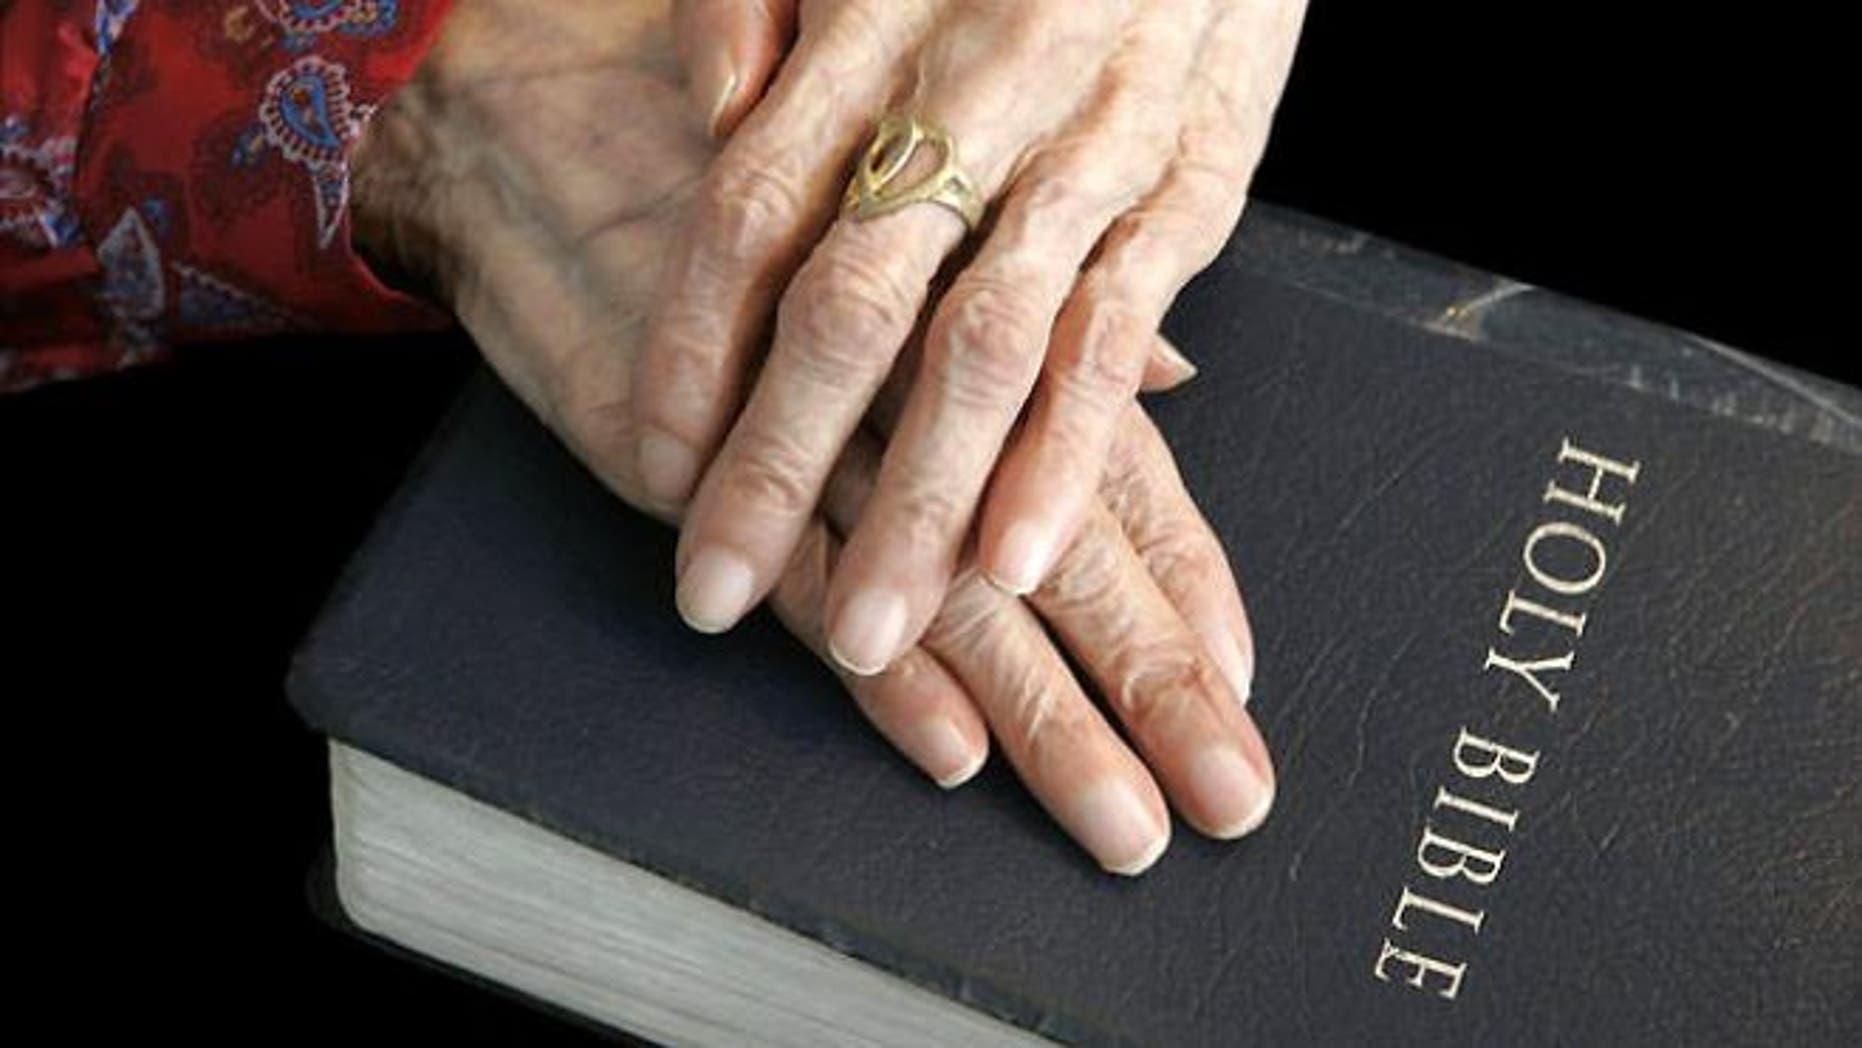 FILE: A federal court judge has issued a preliminary injunction ordering commissioners in North Carolina's Rowan County to halt their practice of opening government meetings with a prayer specific to one religion.